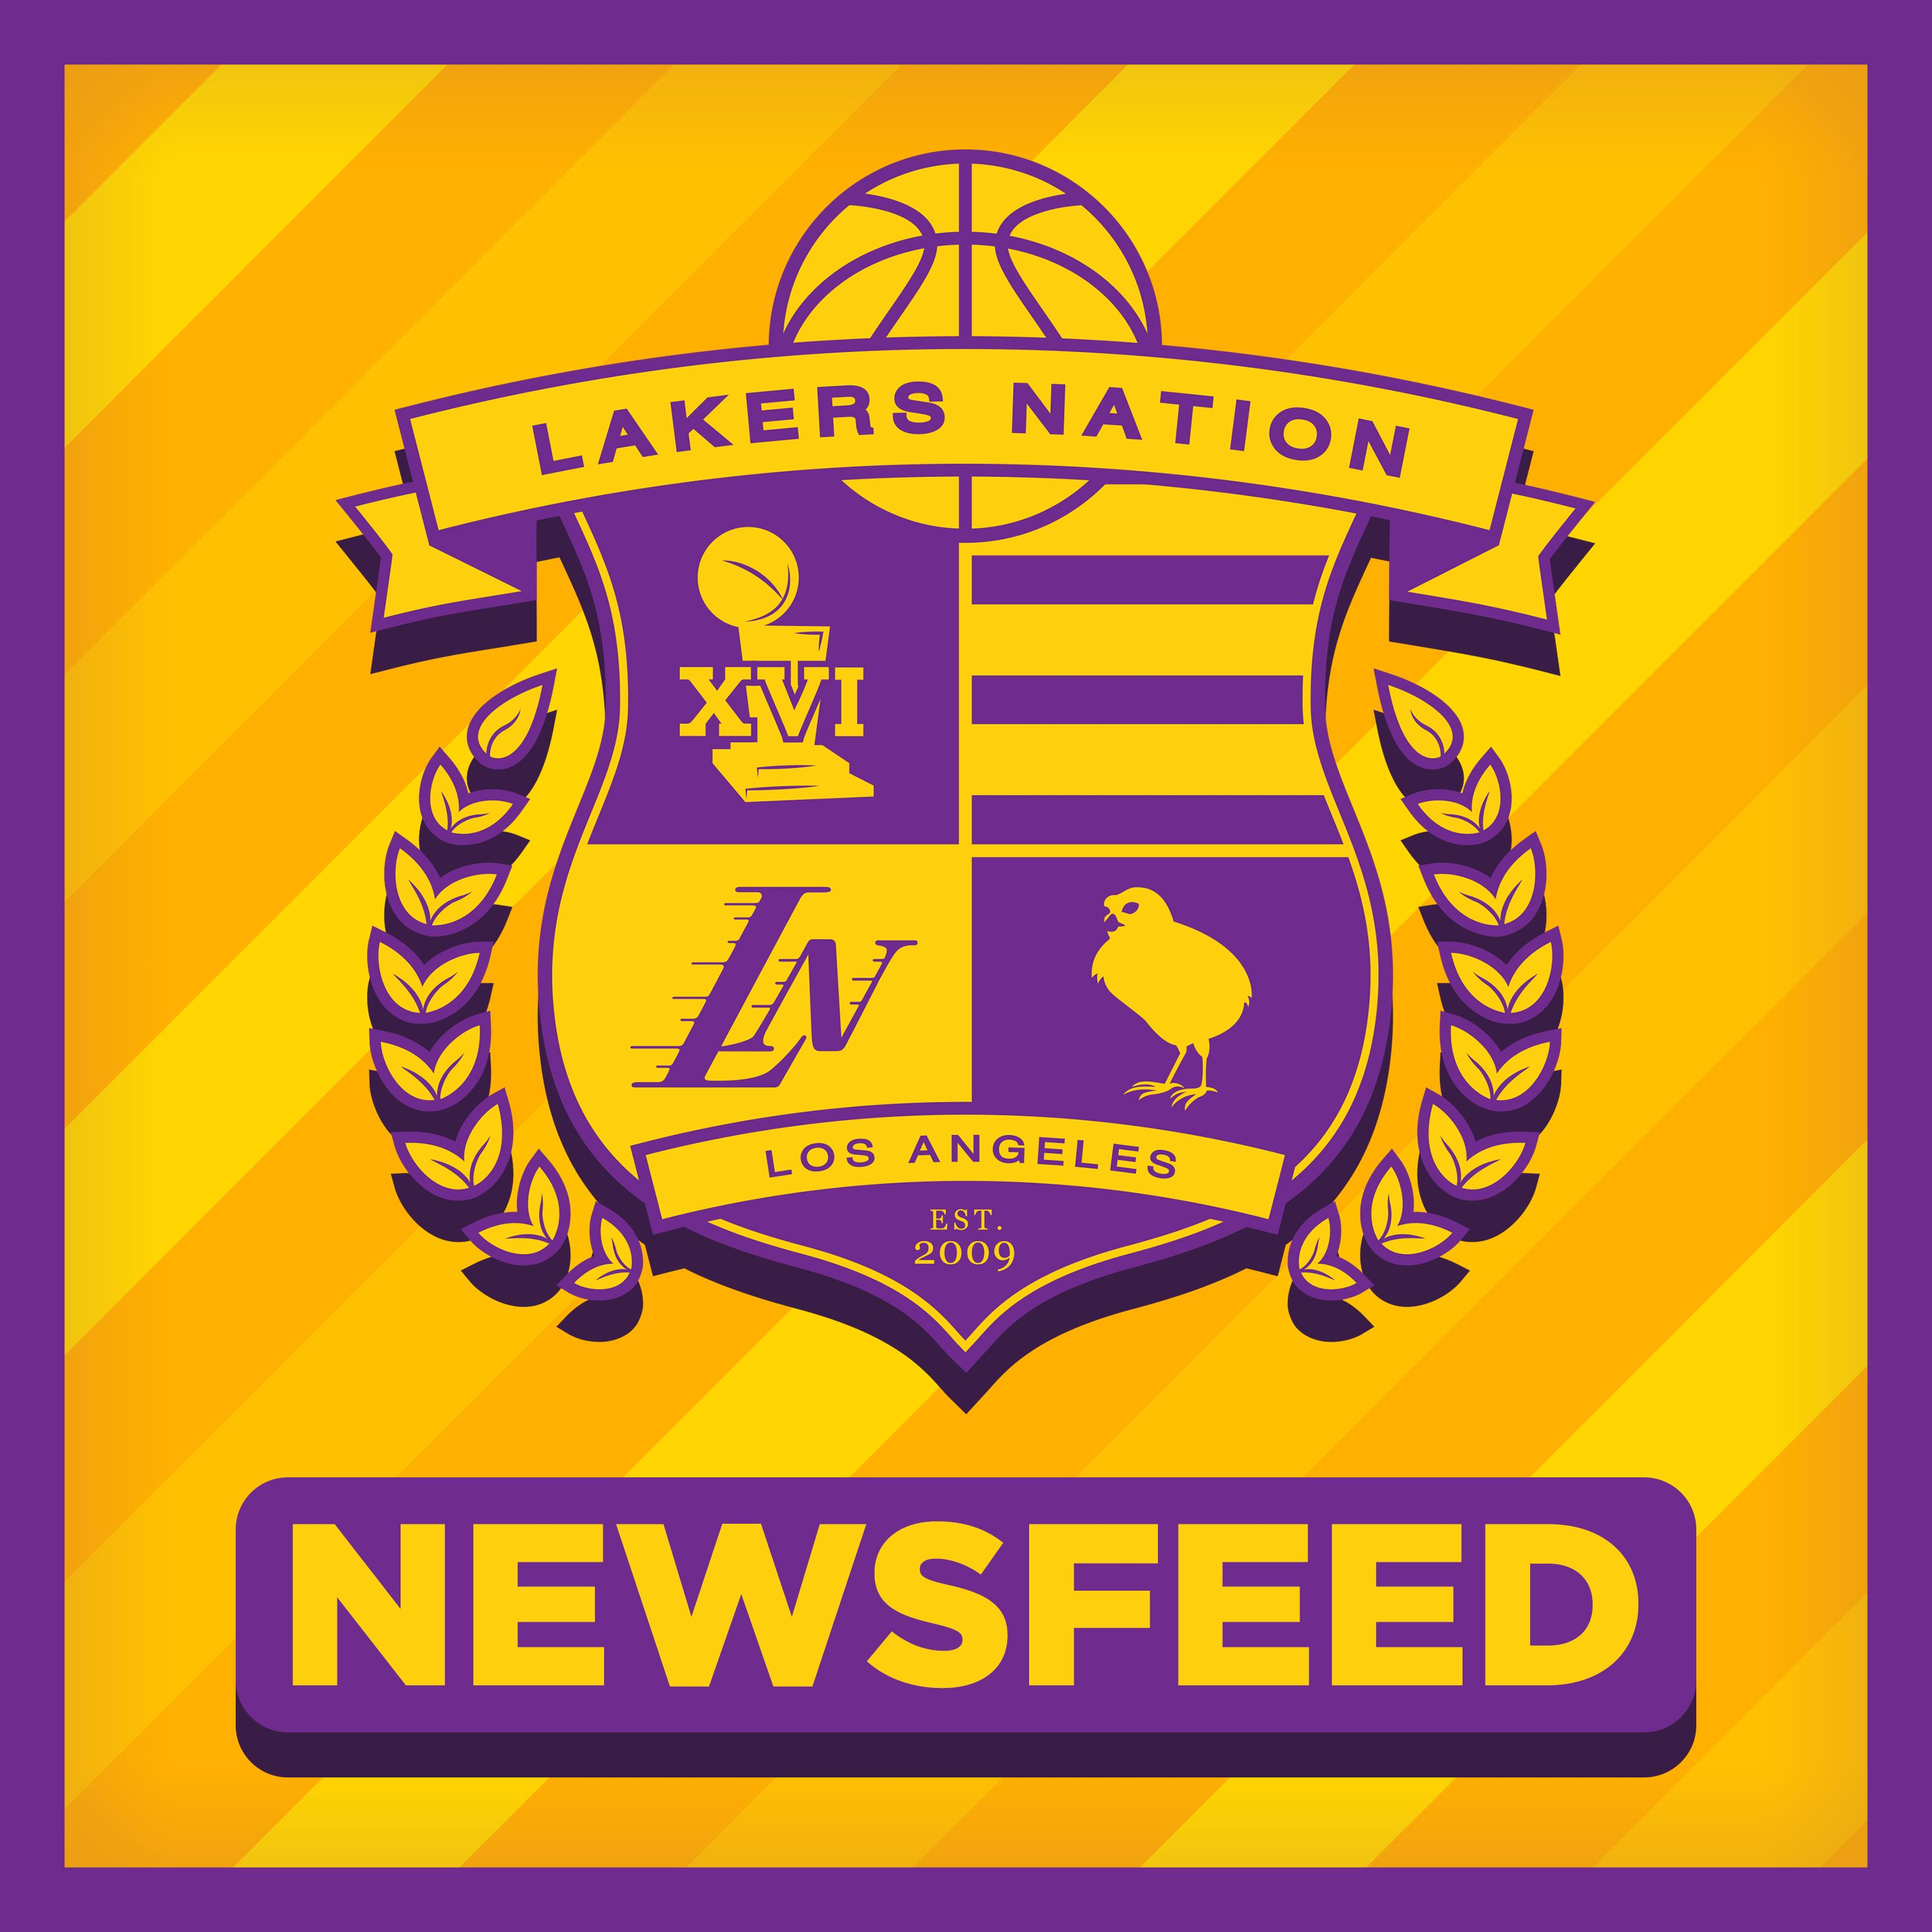 Lakers Practice Facility To Re-Open